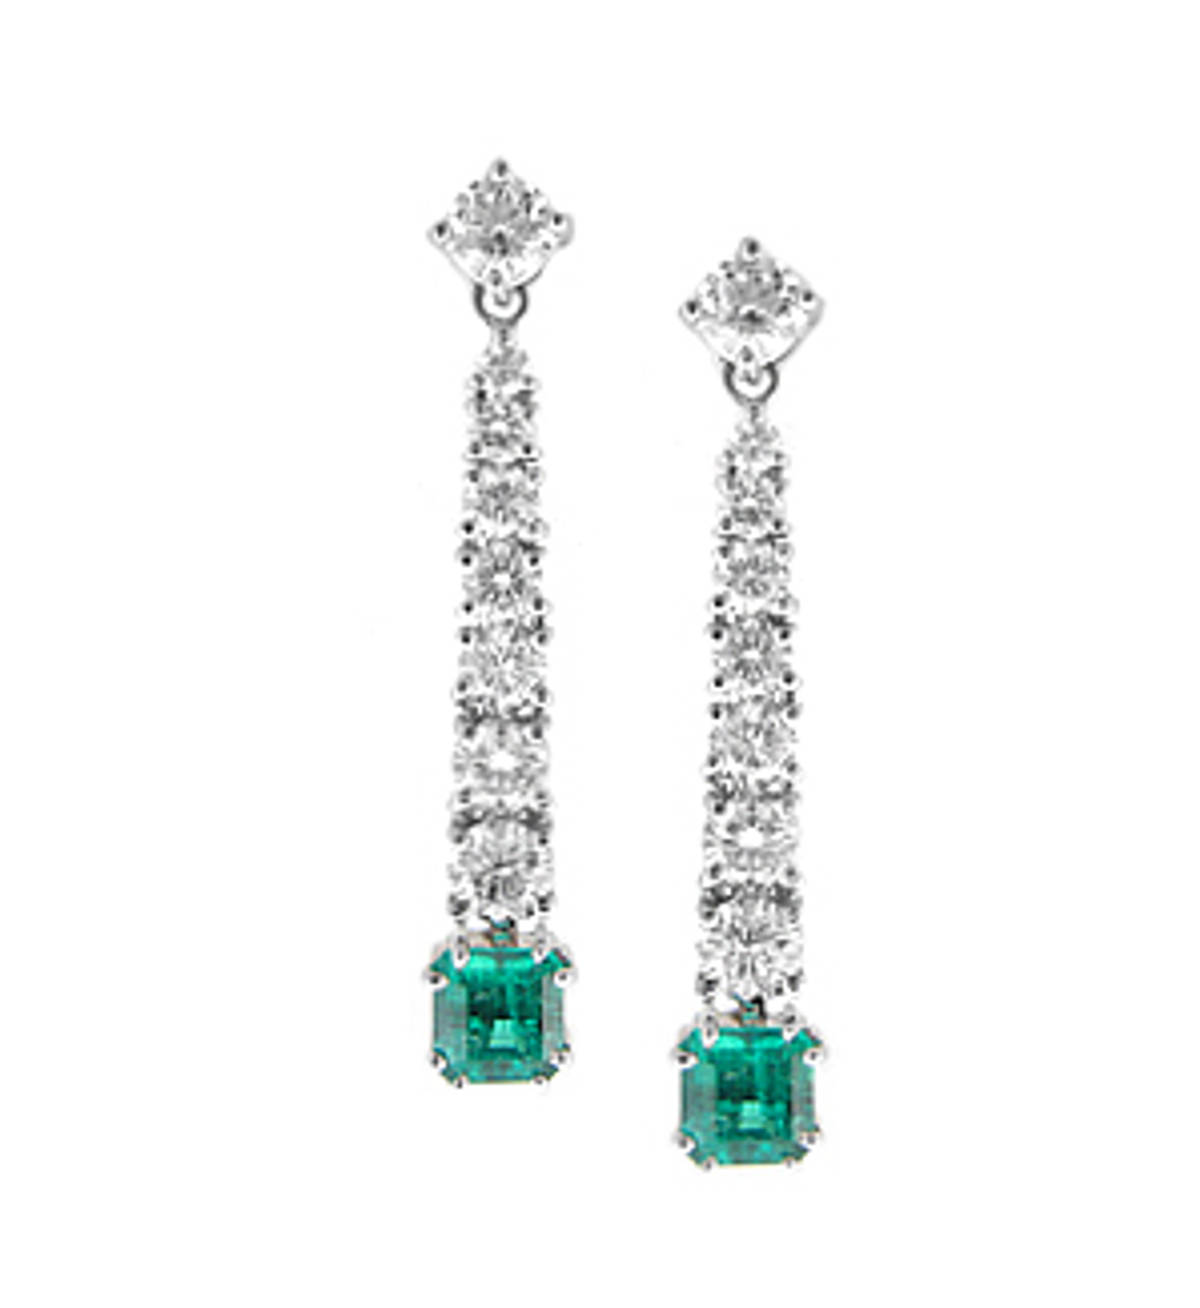 Square emerald and round diamond drop earrings. 2.33ct diamonds and 1.54ct emeralds set in 18k white gold